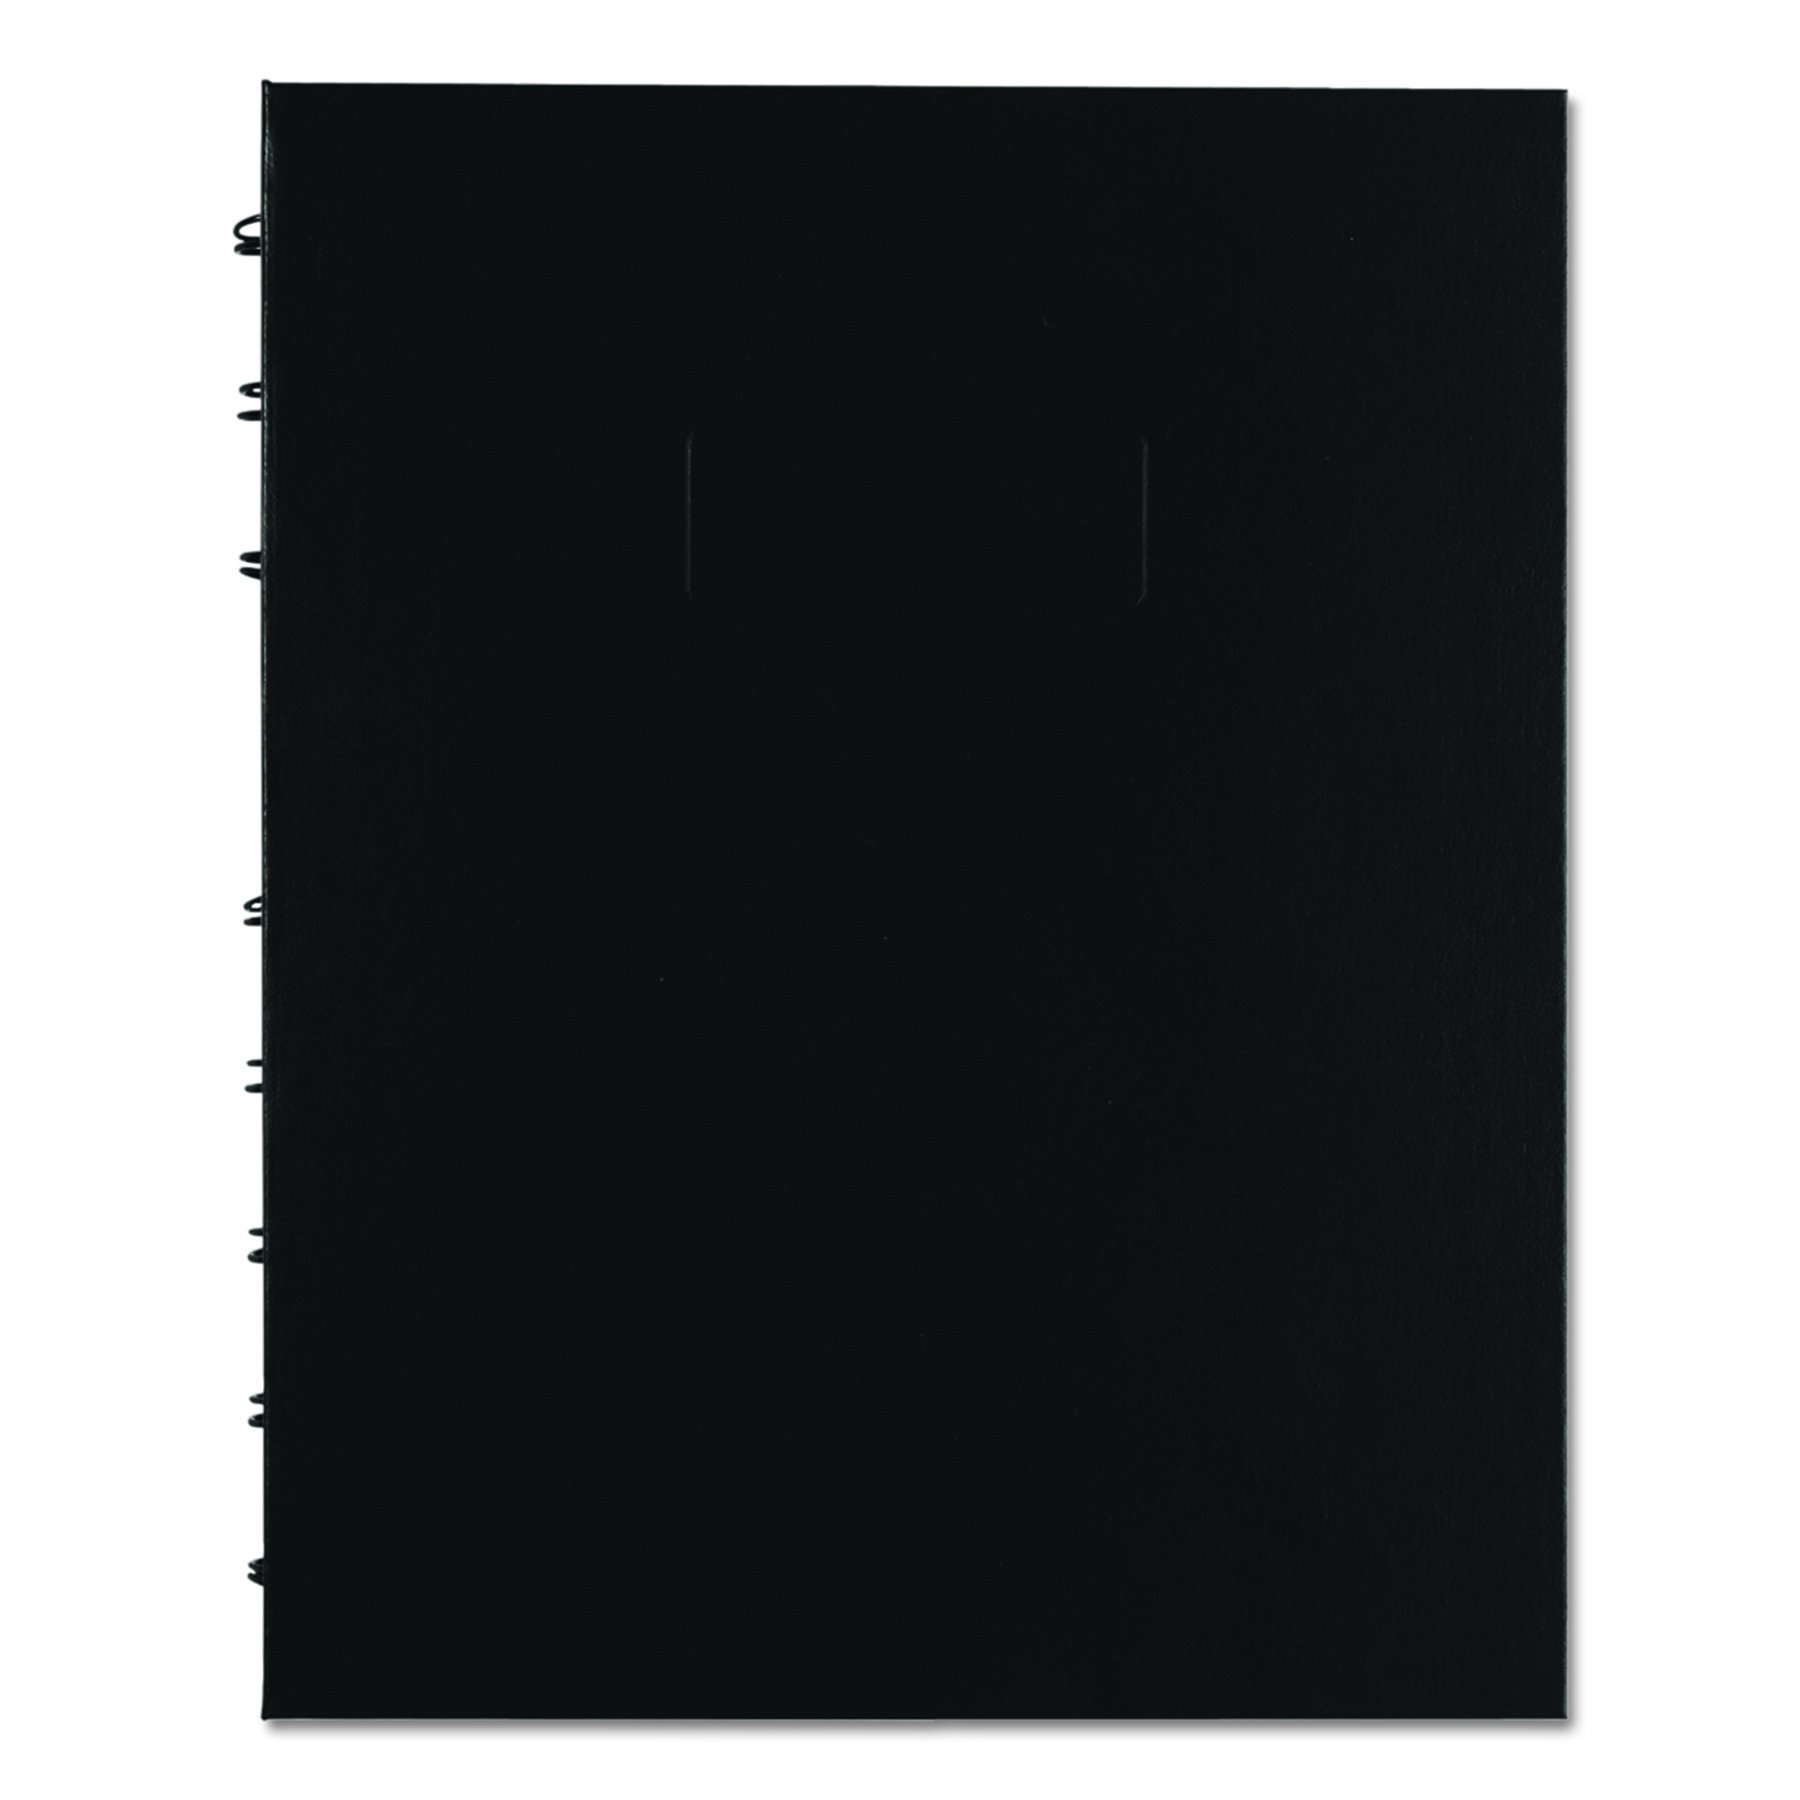 BLUELINE NotePro Quad & Ruled Notebook, Black, 9.25 x 7.25 inches, 192 Pages (A44C.81)